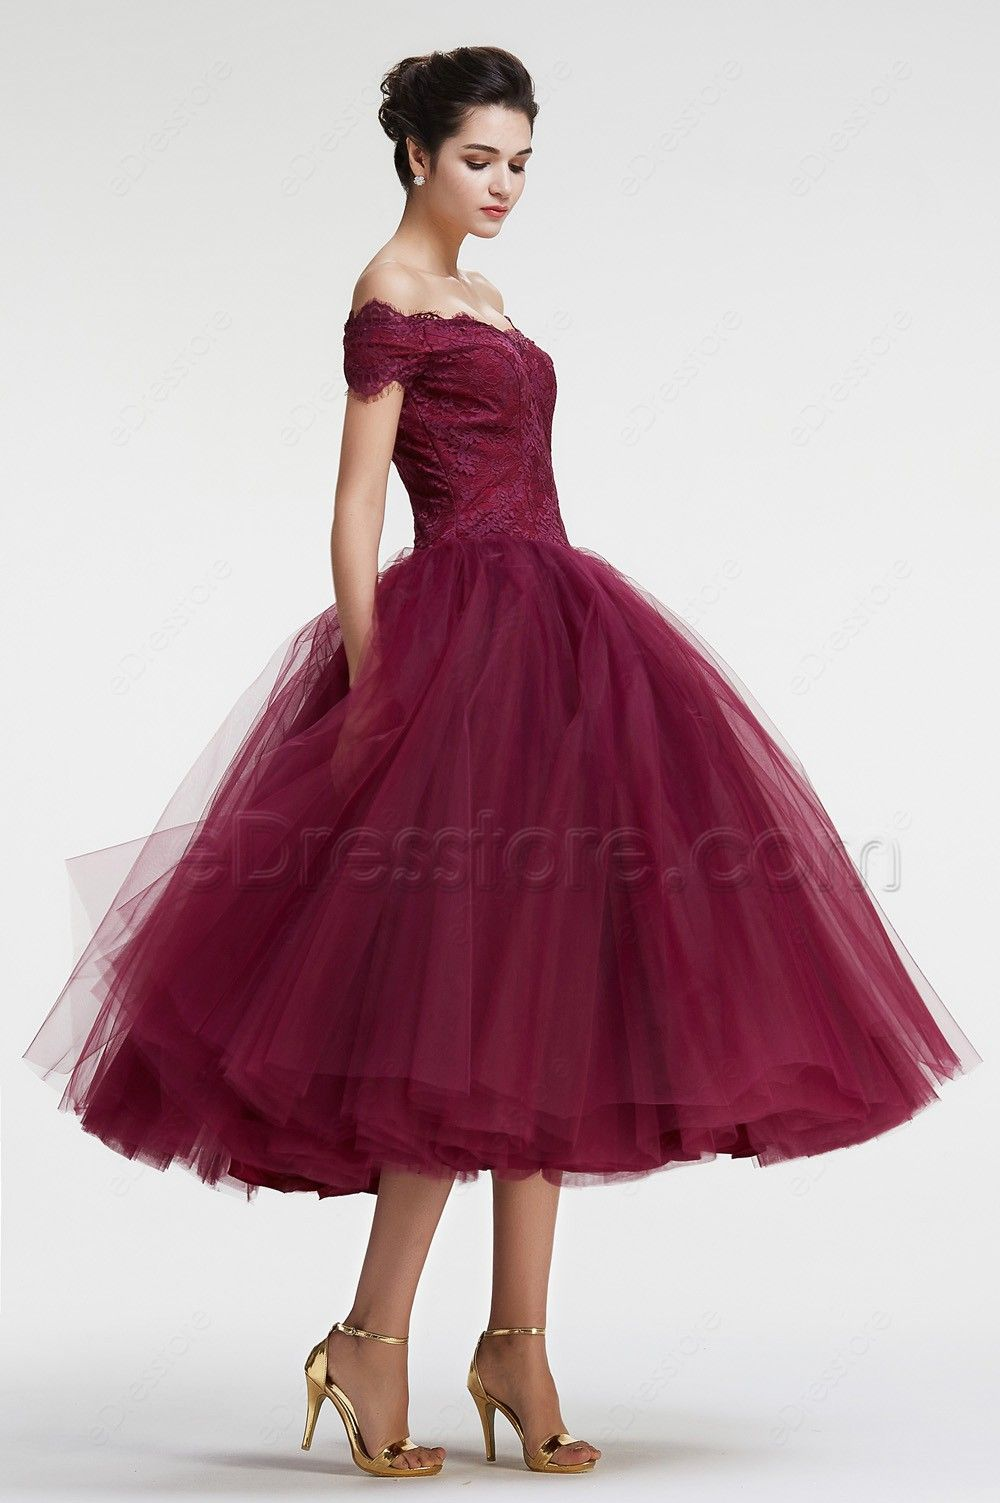 8f18b67832 The burgundy prom dress features off the shoulder neckline with scalloped  lace